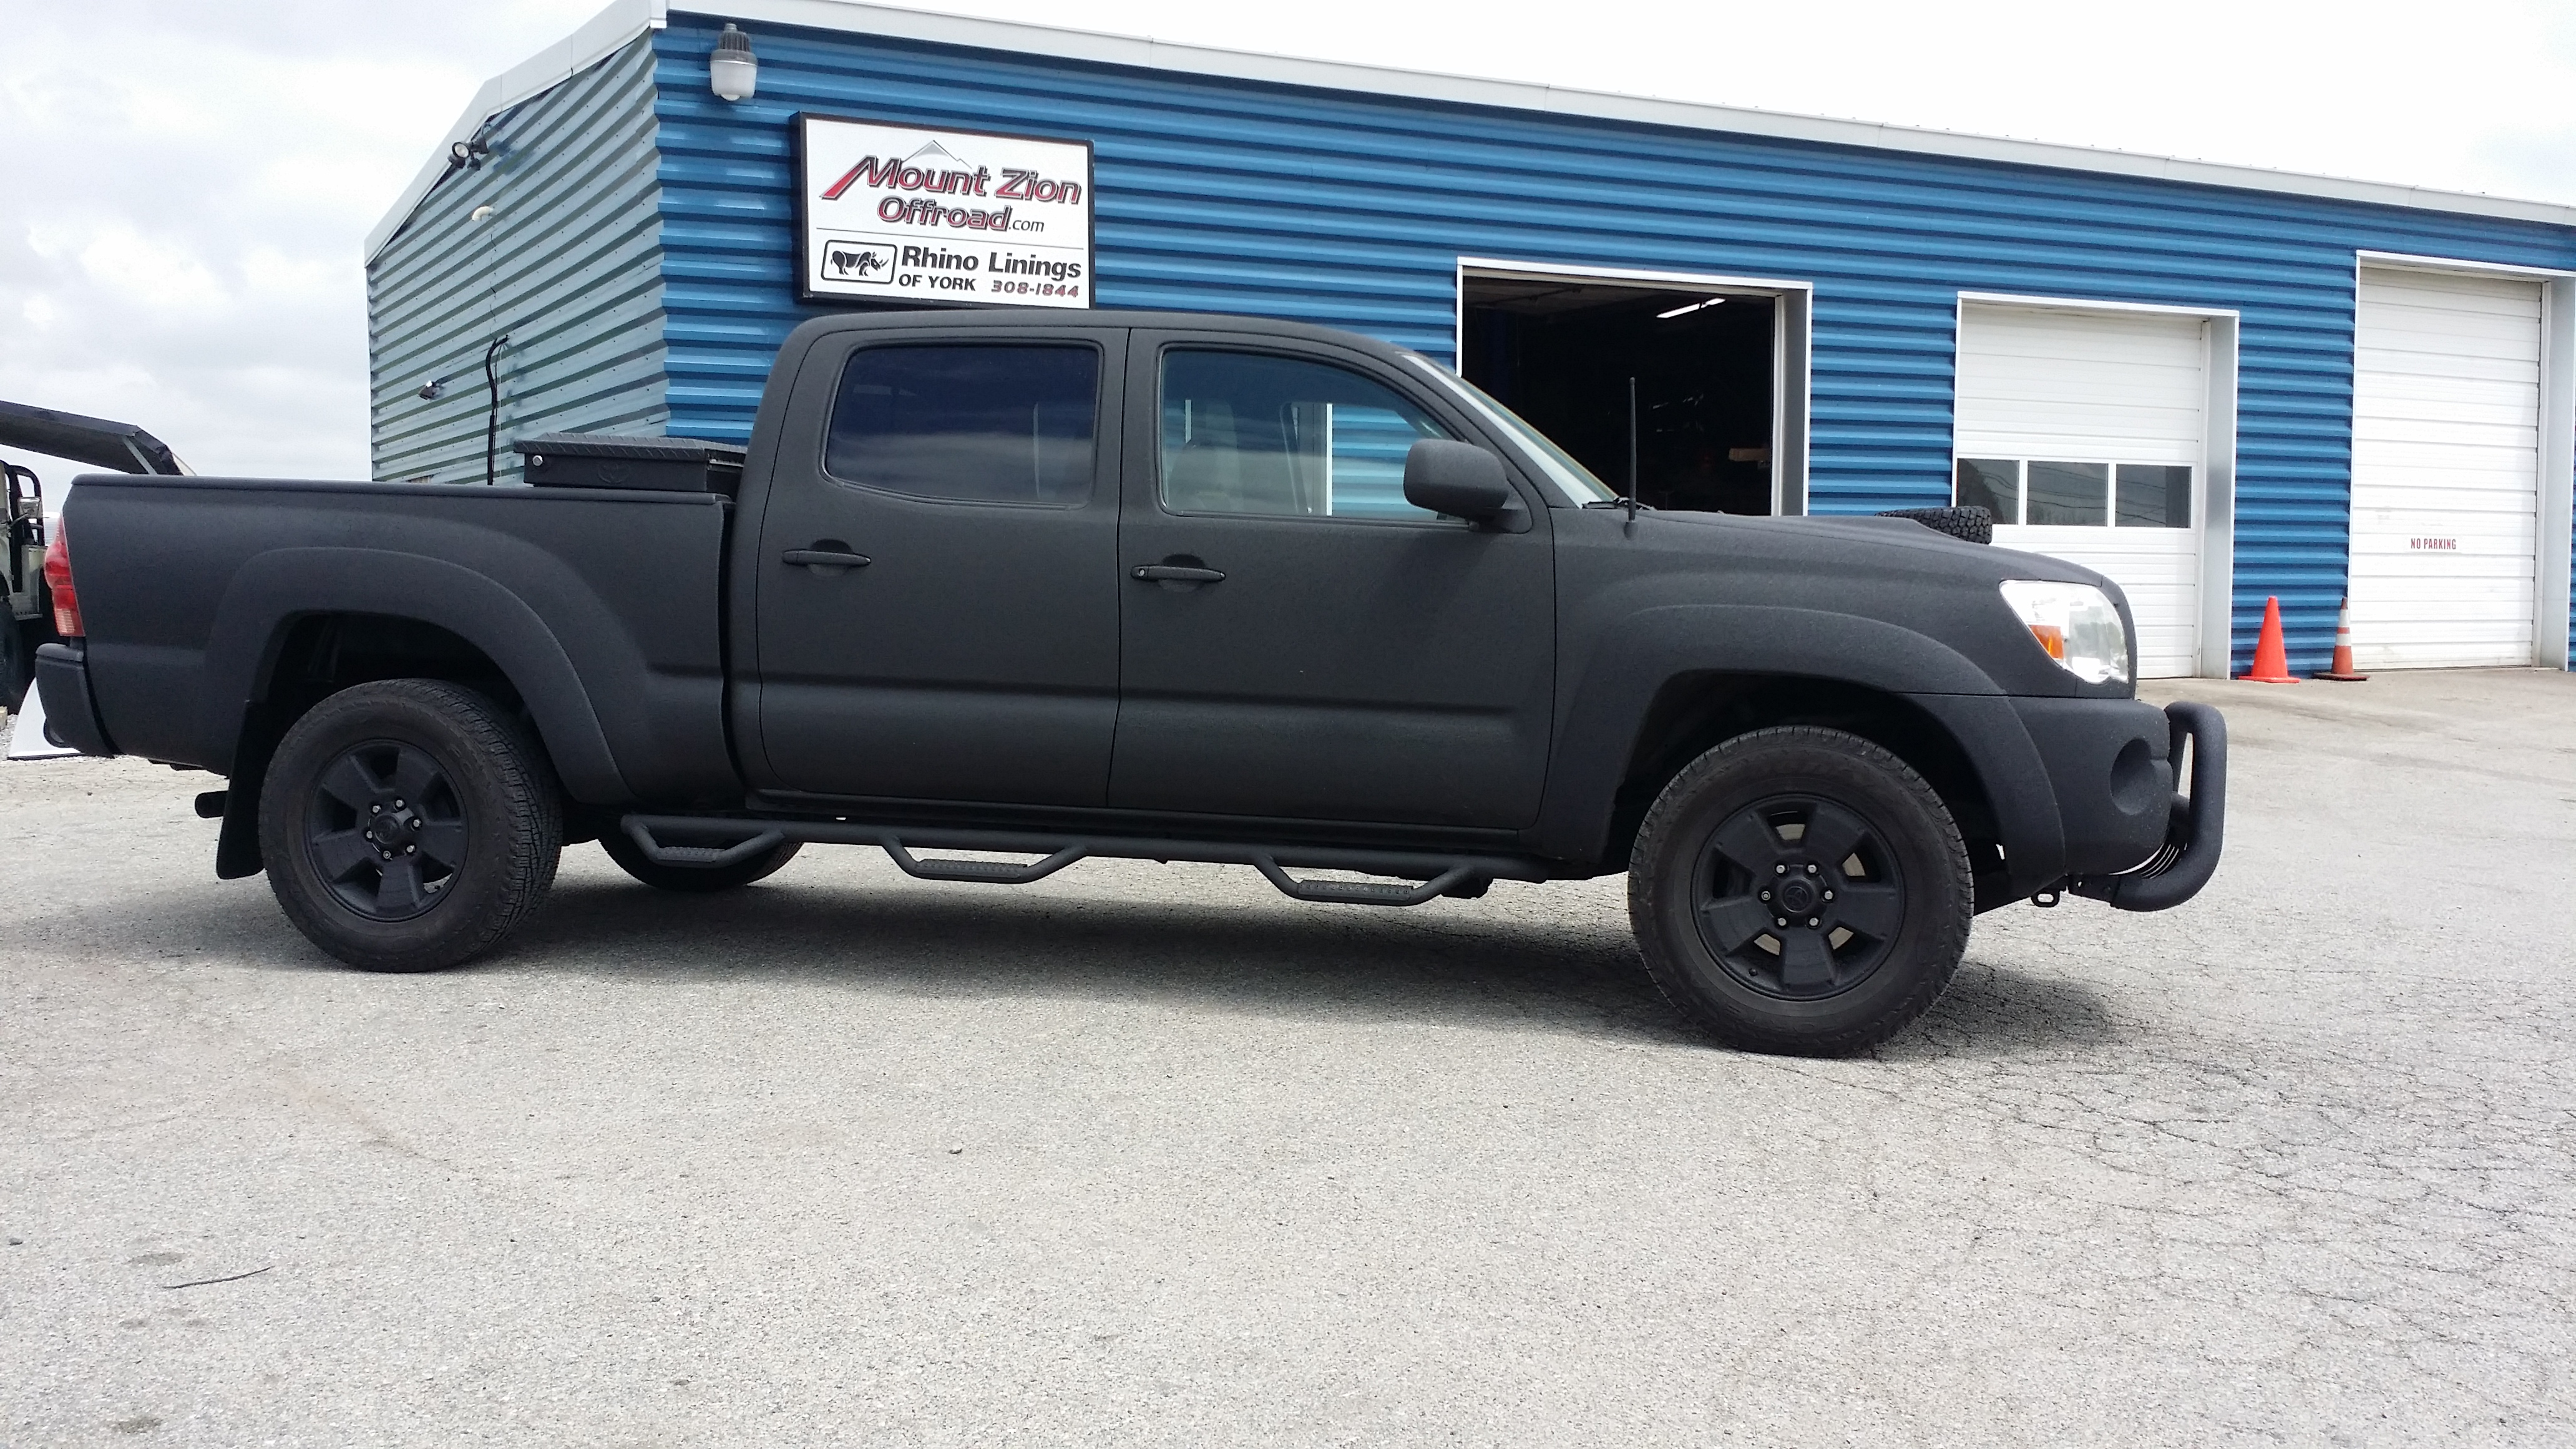 Rhino Lined Truck >> 2008 Toyota Tacoma Completely protected with Rhino Linings! | Rhino Linings of York